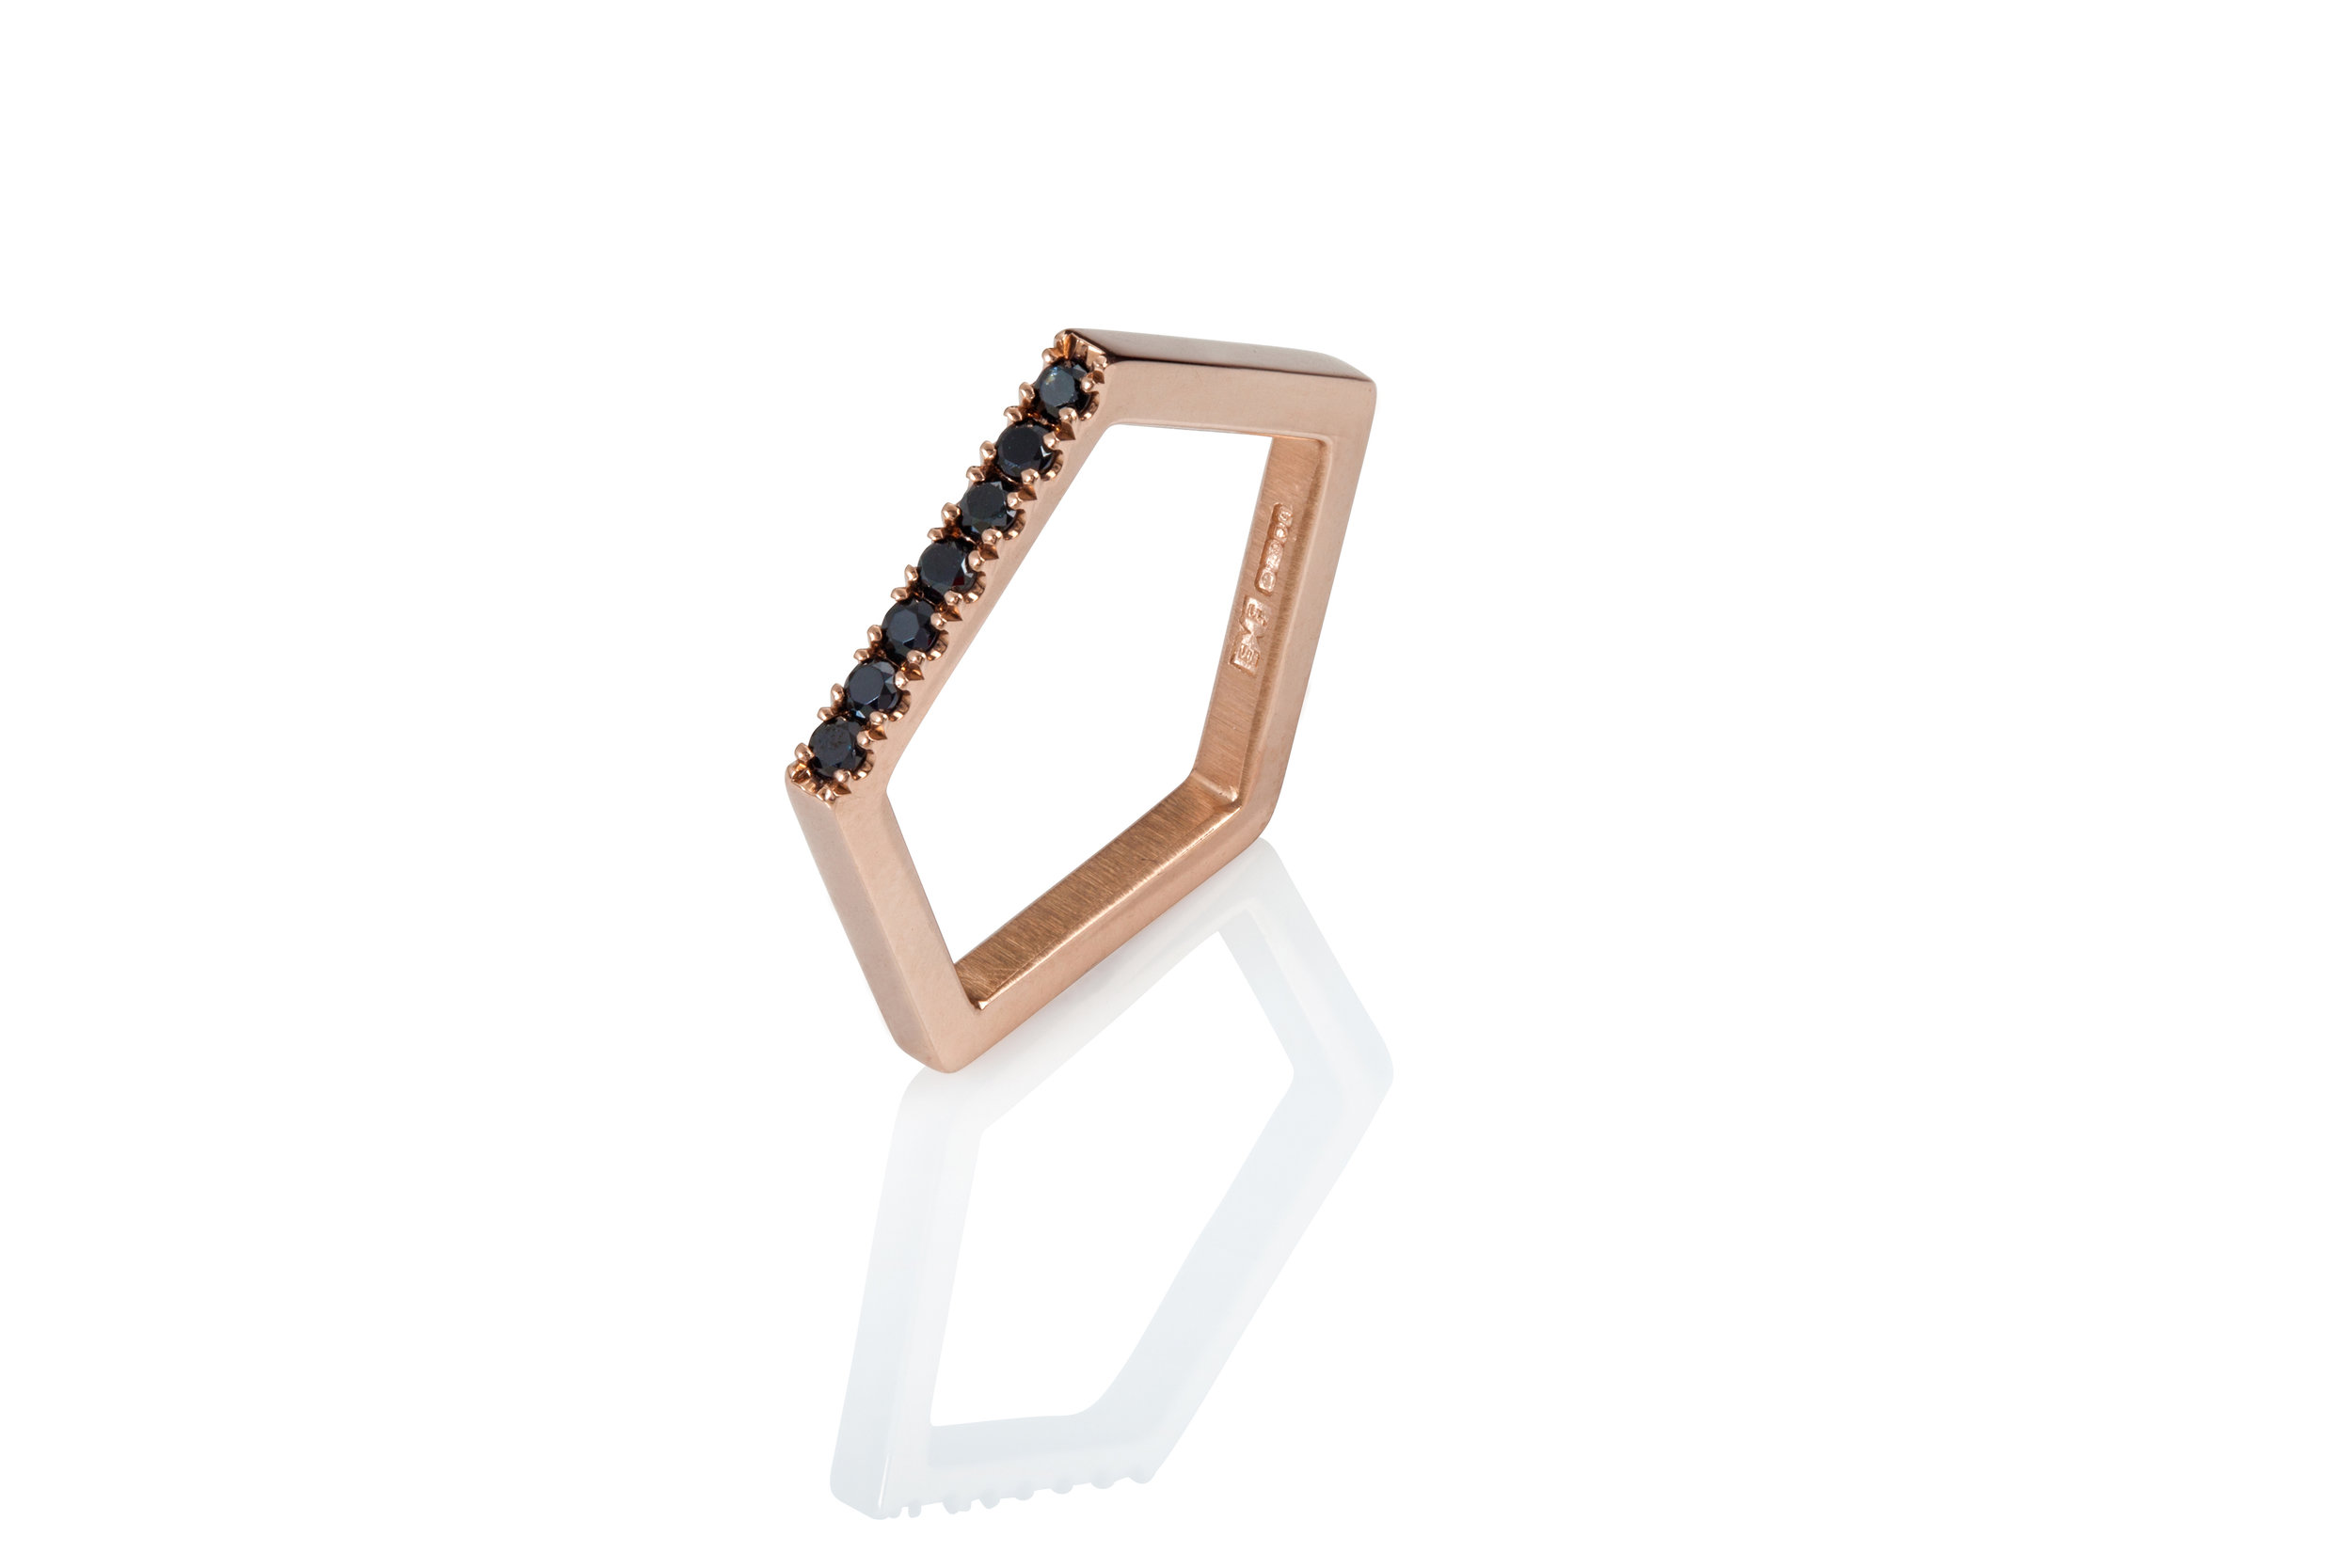 Emma Farquharson rose gold ring with black diamonds.jpg